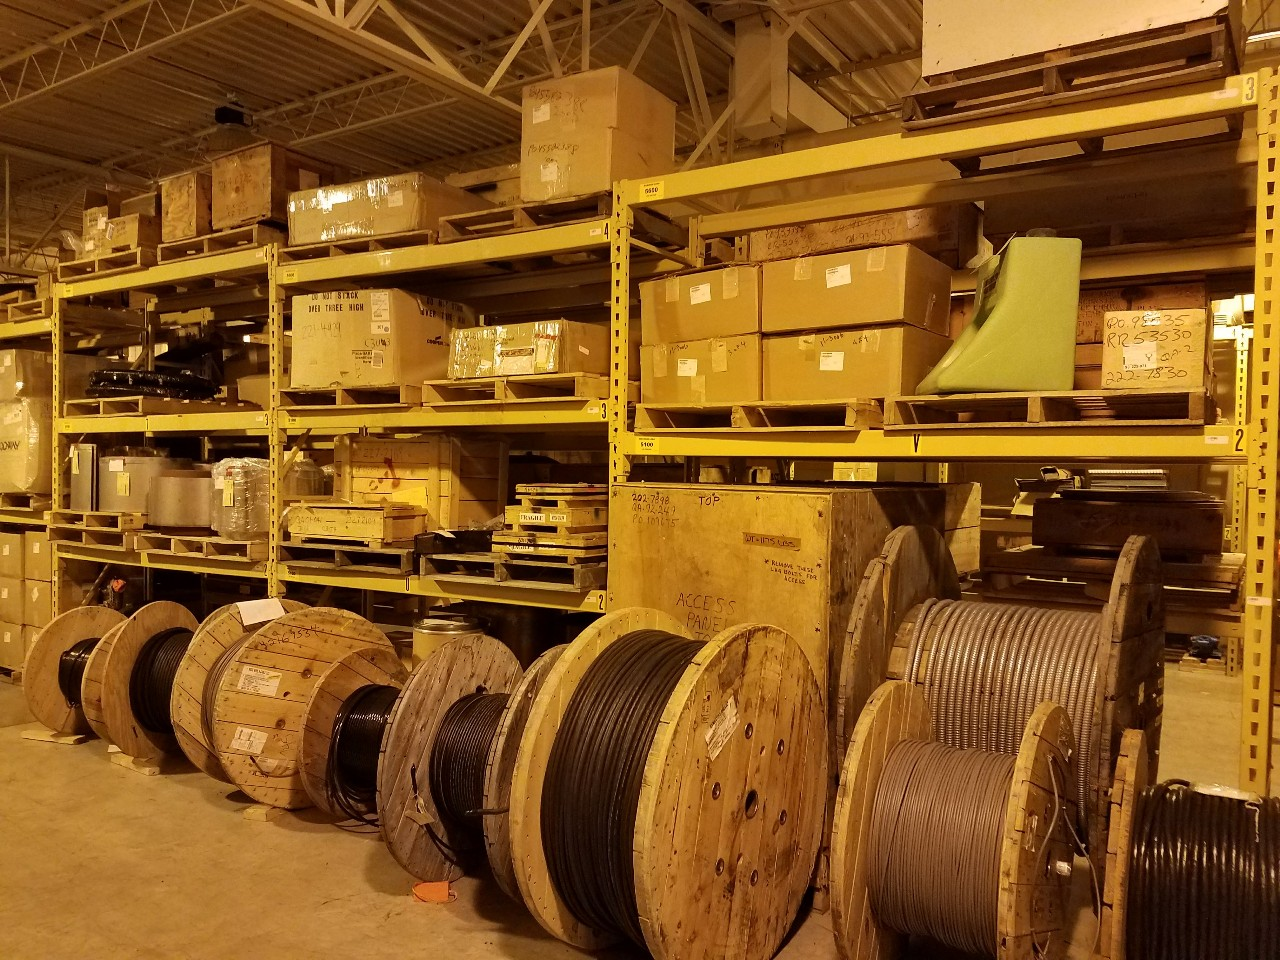 NRI Industrial Sales Inc. for event Wisconsin Nuclear Plant - Spare Parts and Equipment (DAY 1)